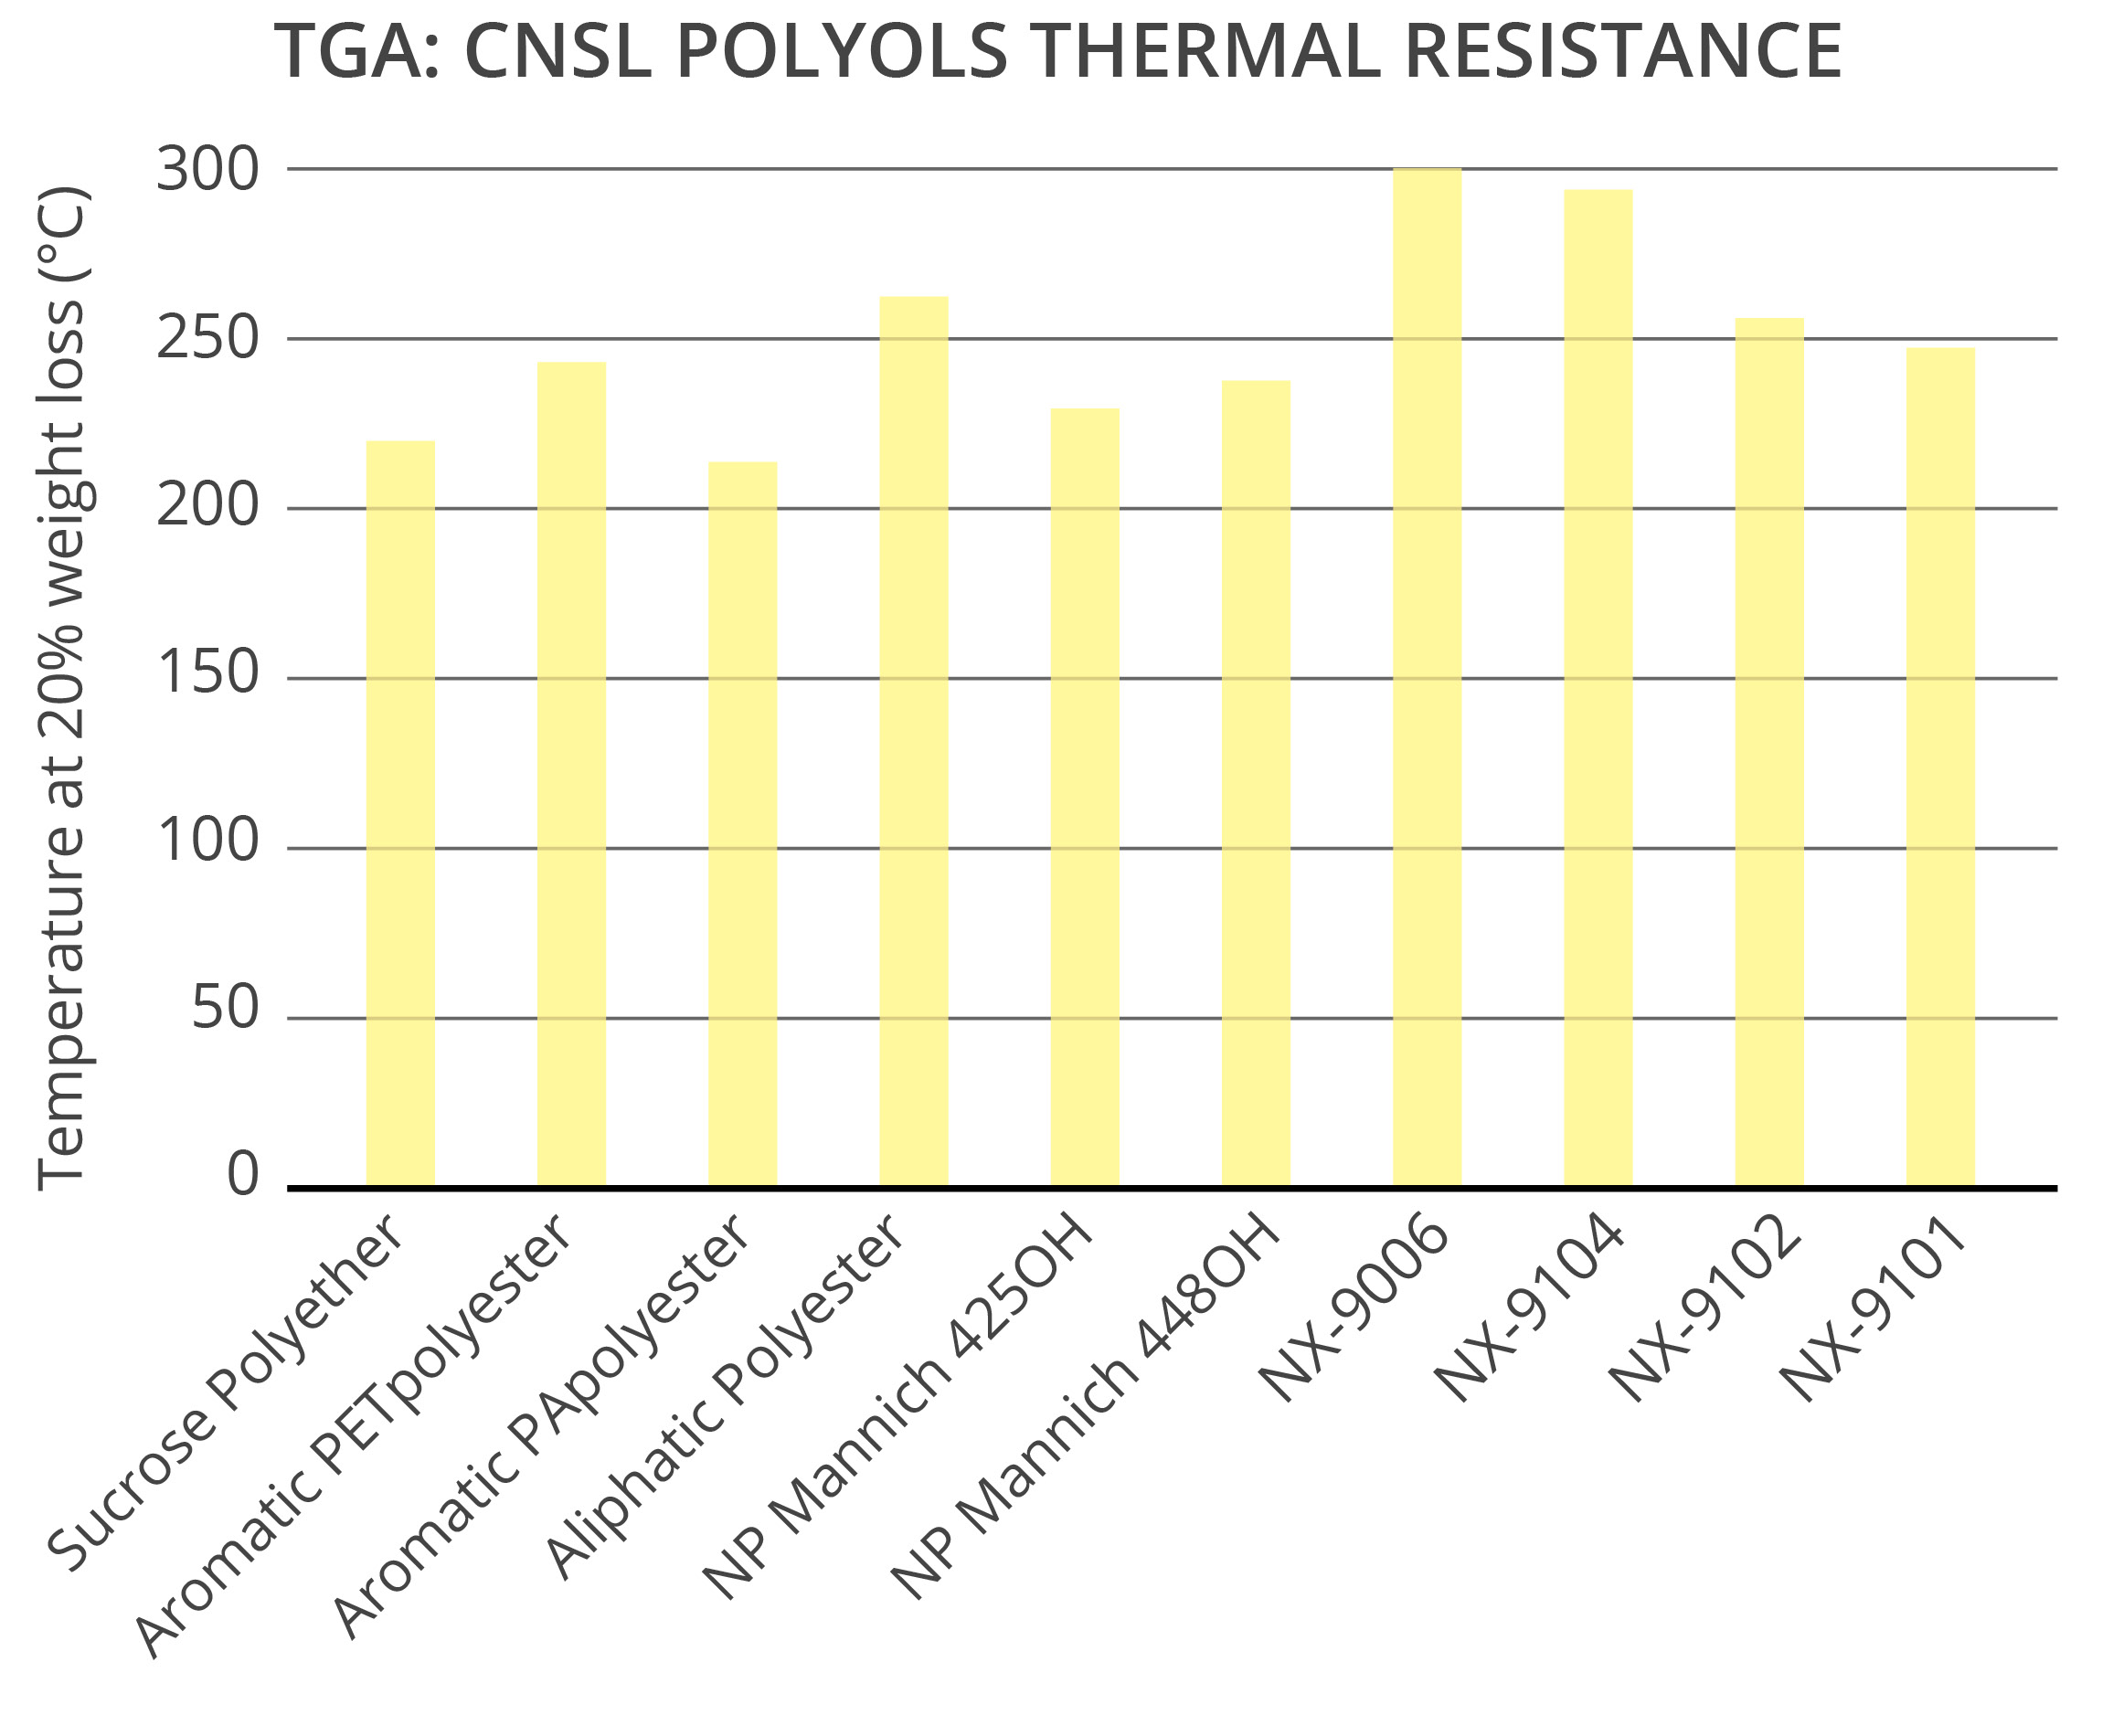 CNSL polyols provide excellent thermal resistance to polyurethane rigid foams